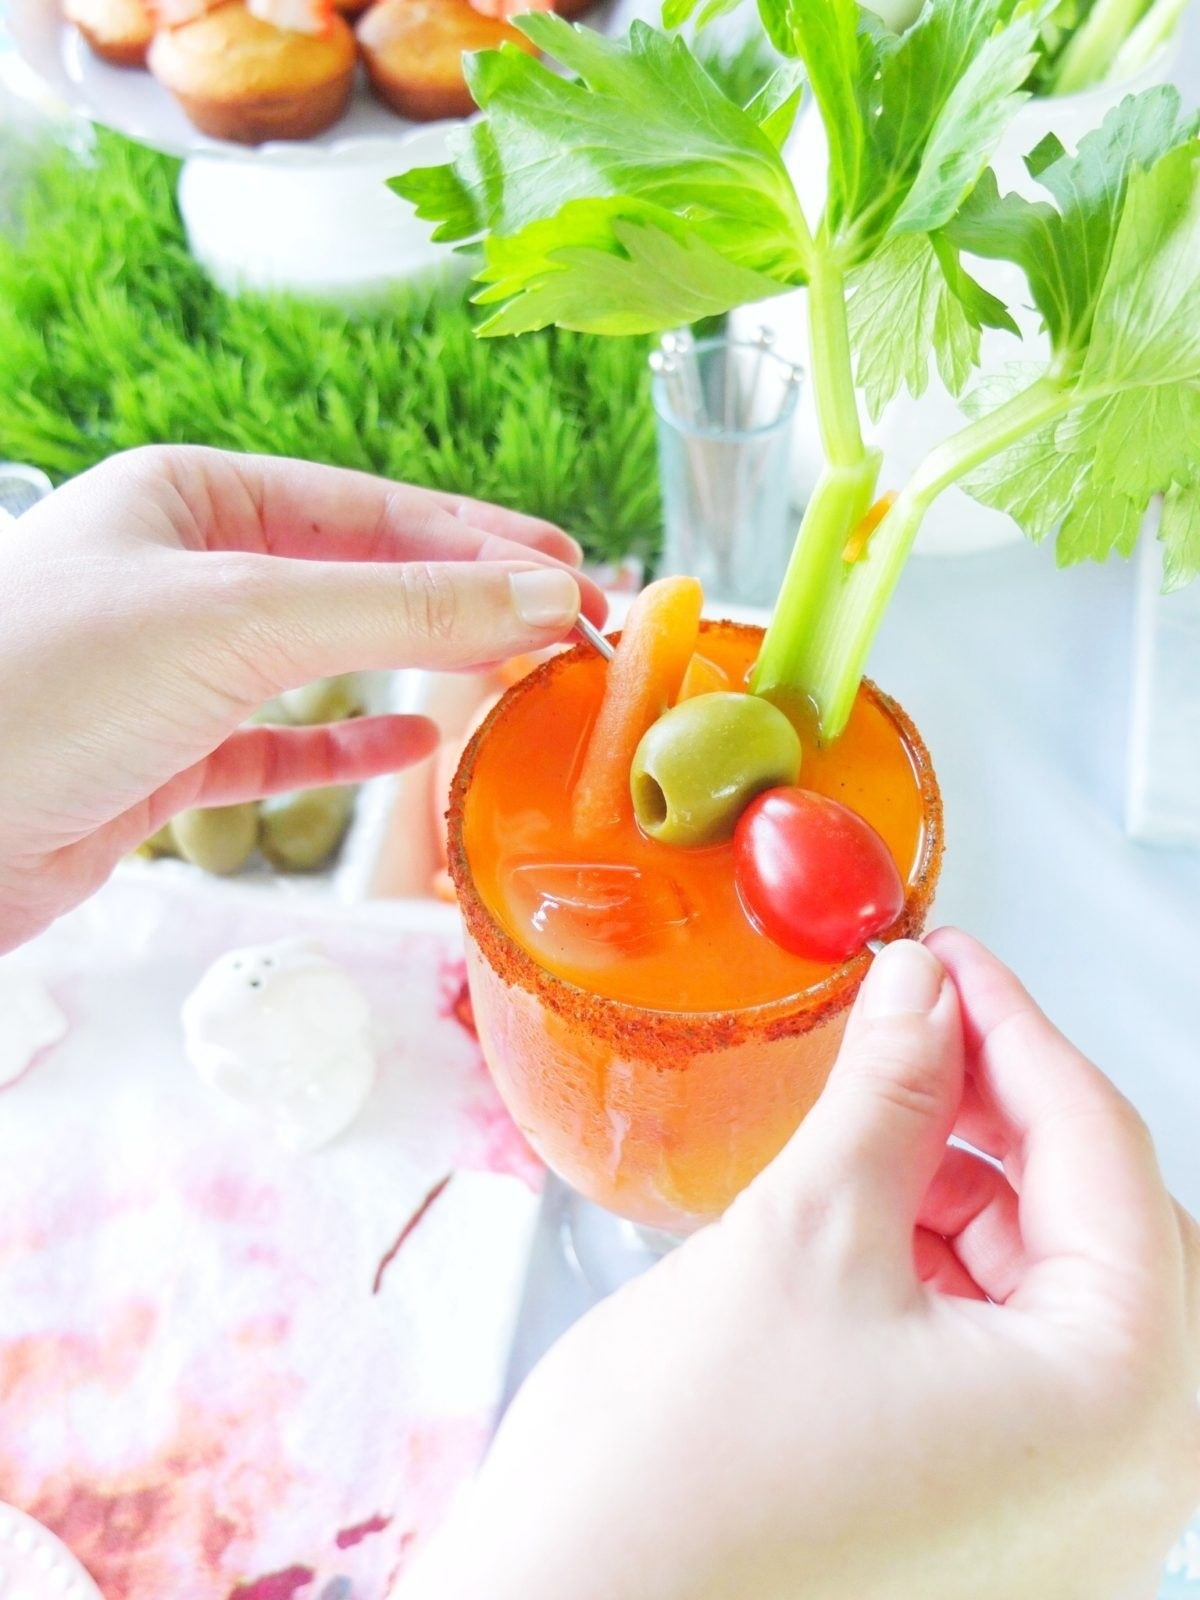 Putting tomato, olive, and pickled carrot garnish into a Bloody Mary.